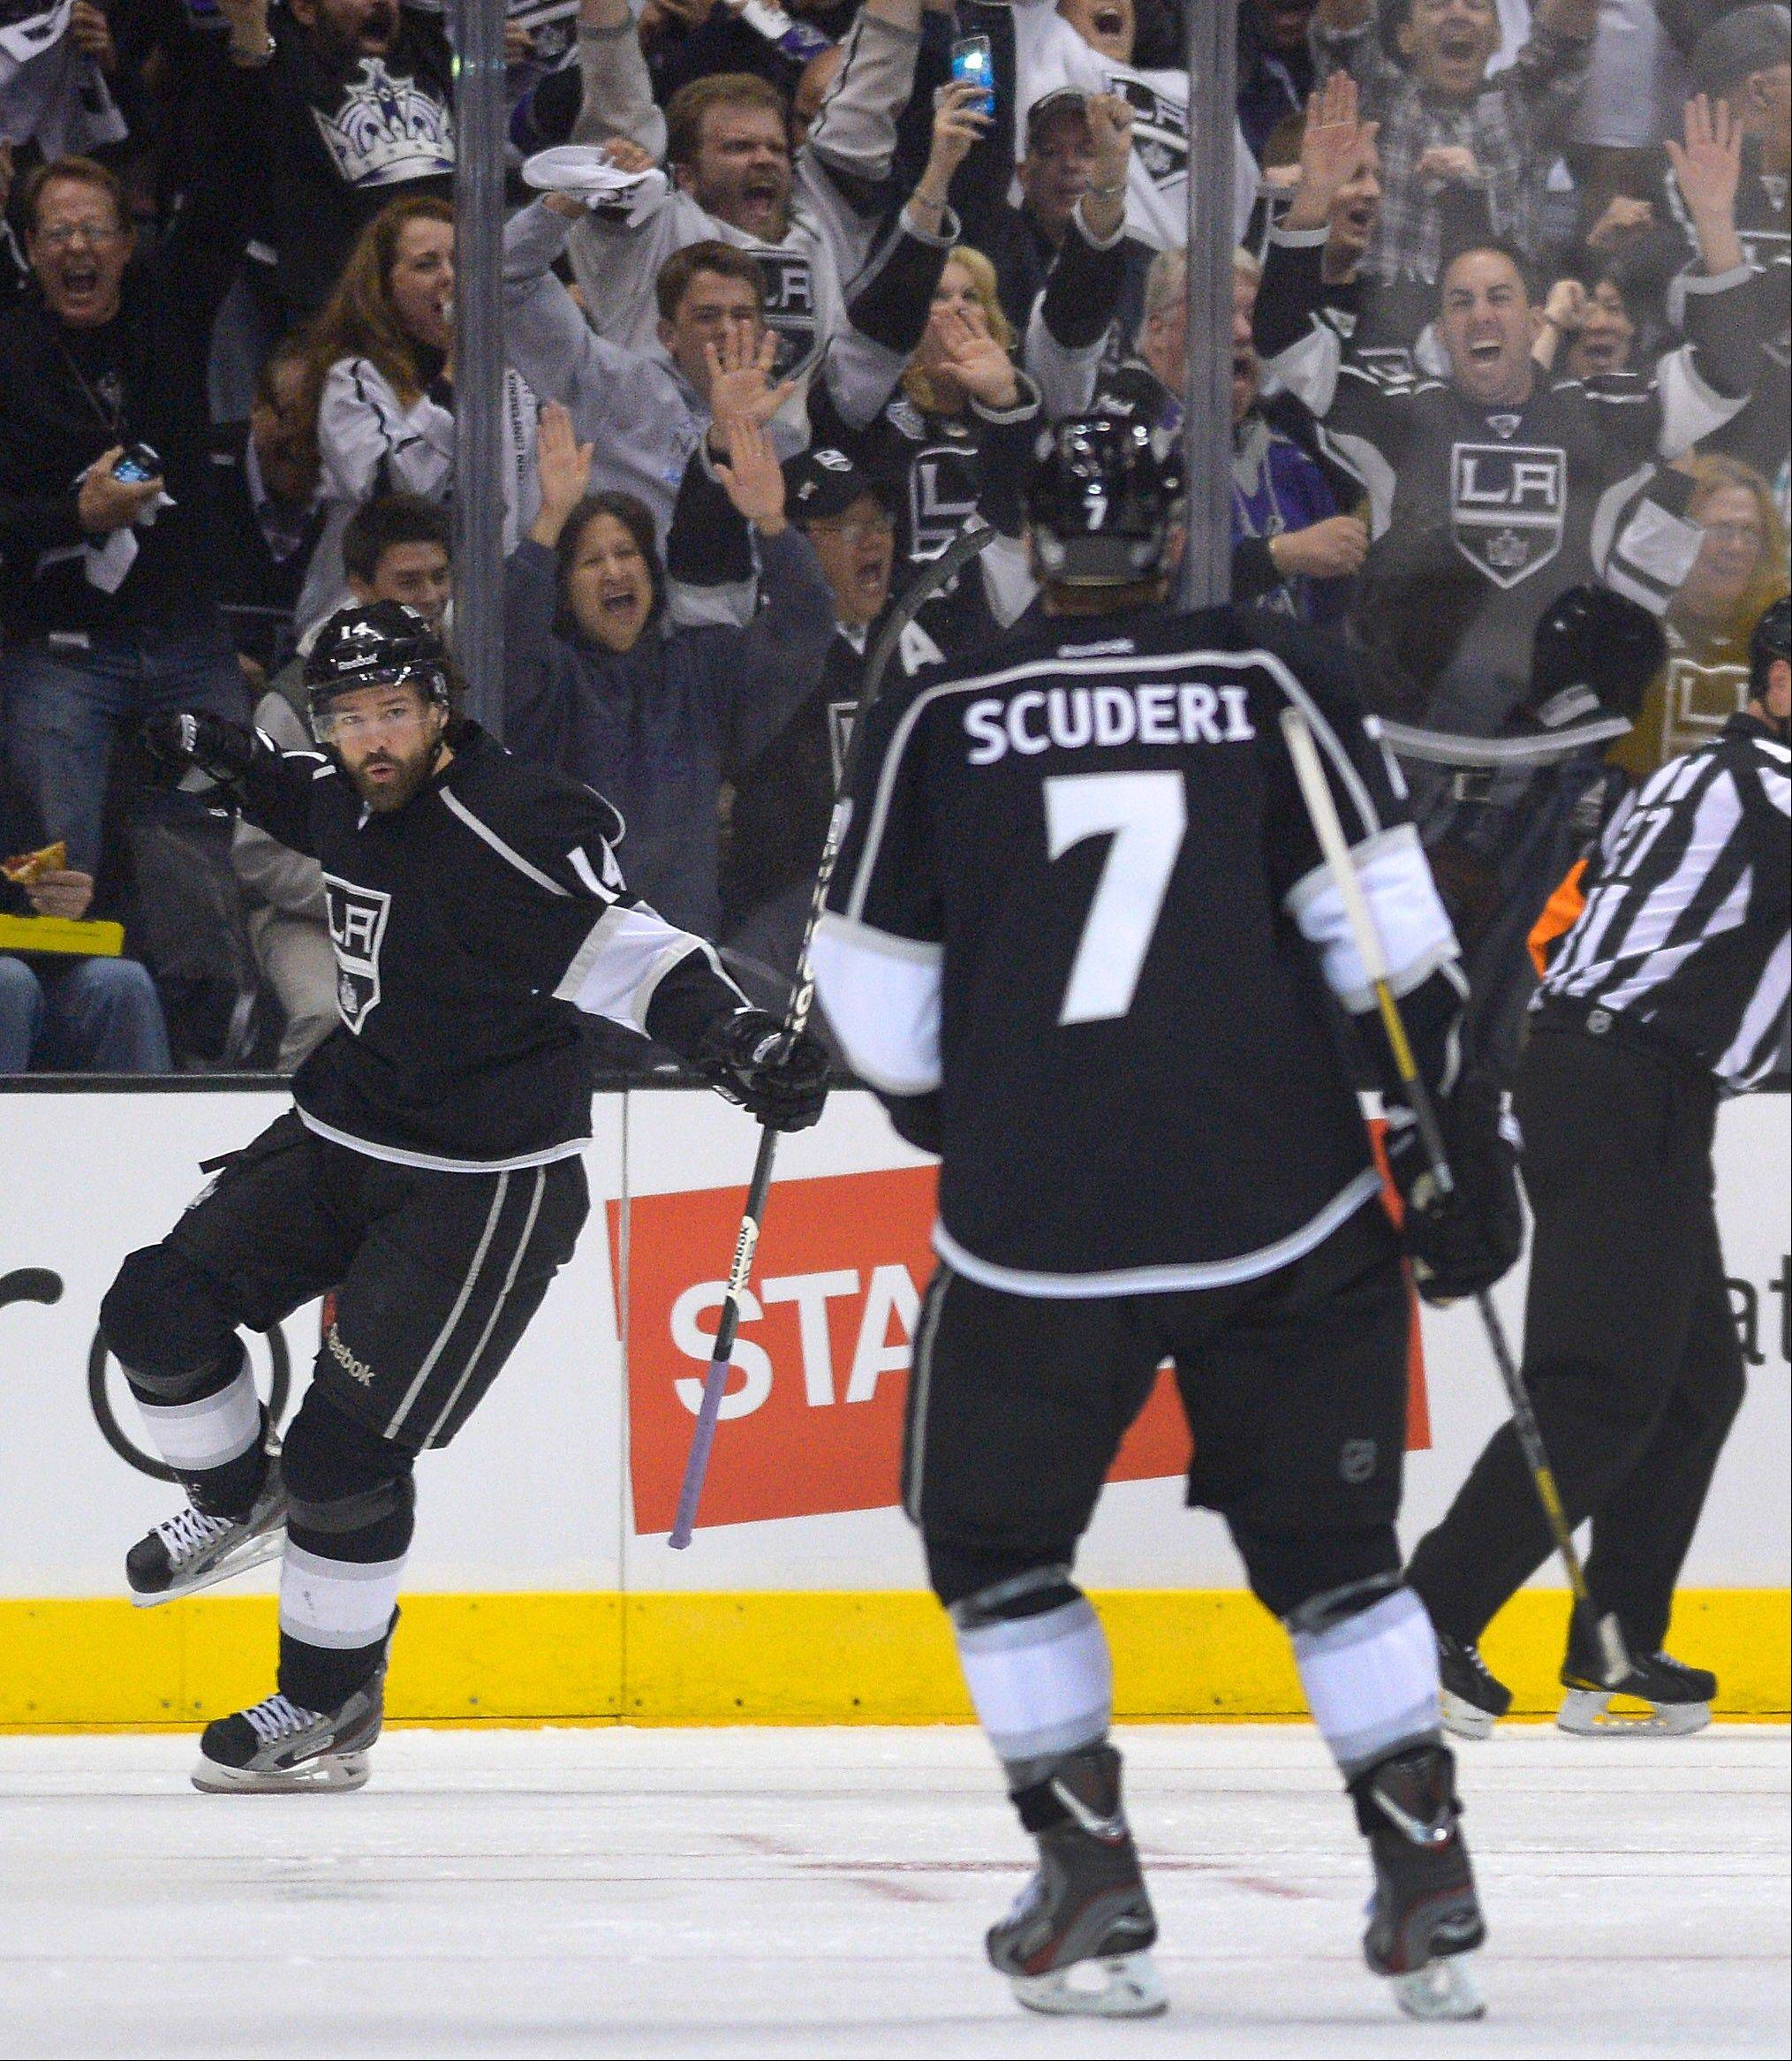 Los Angeles Kings right wing Justin Williams (14) celebrates in front of defenseman Rob Scuderi (7) after scoring a goal against the Chicago Blackhawks during the first period in Game 3 of the NHL hockey Stanley Cup playoffs Western Conference finals, Tuesday, June 4, 2013, in Los Angeles.